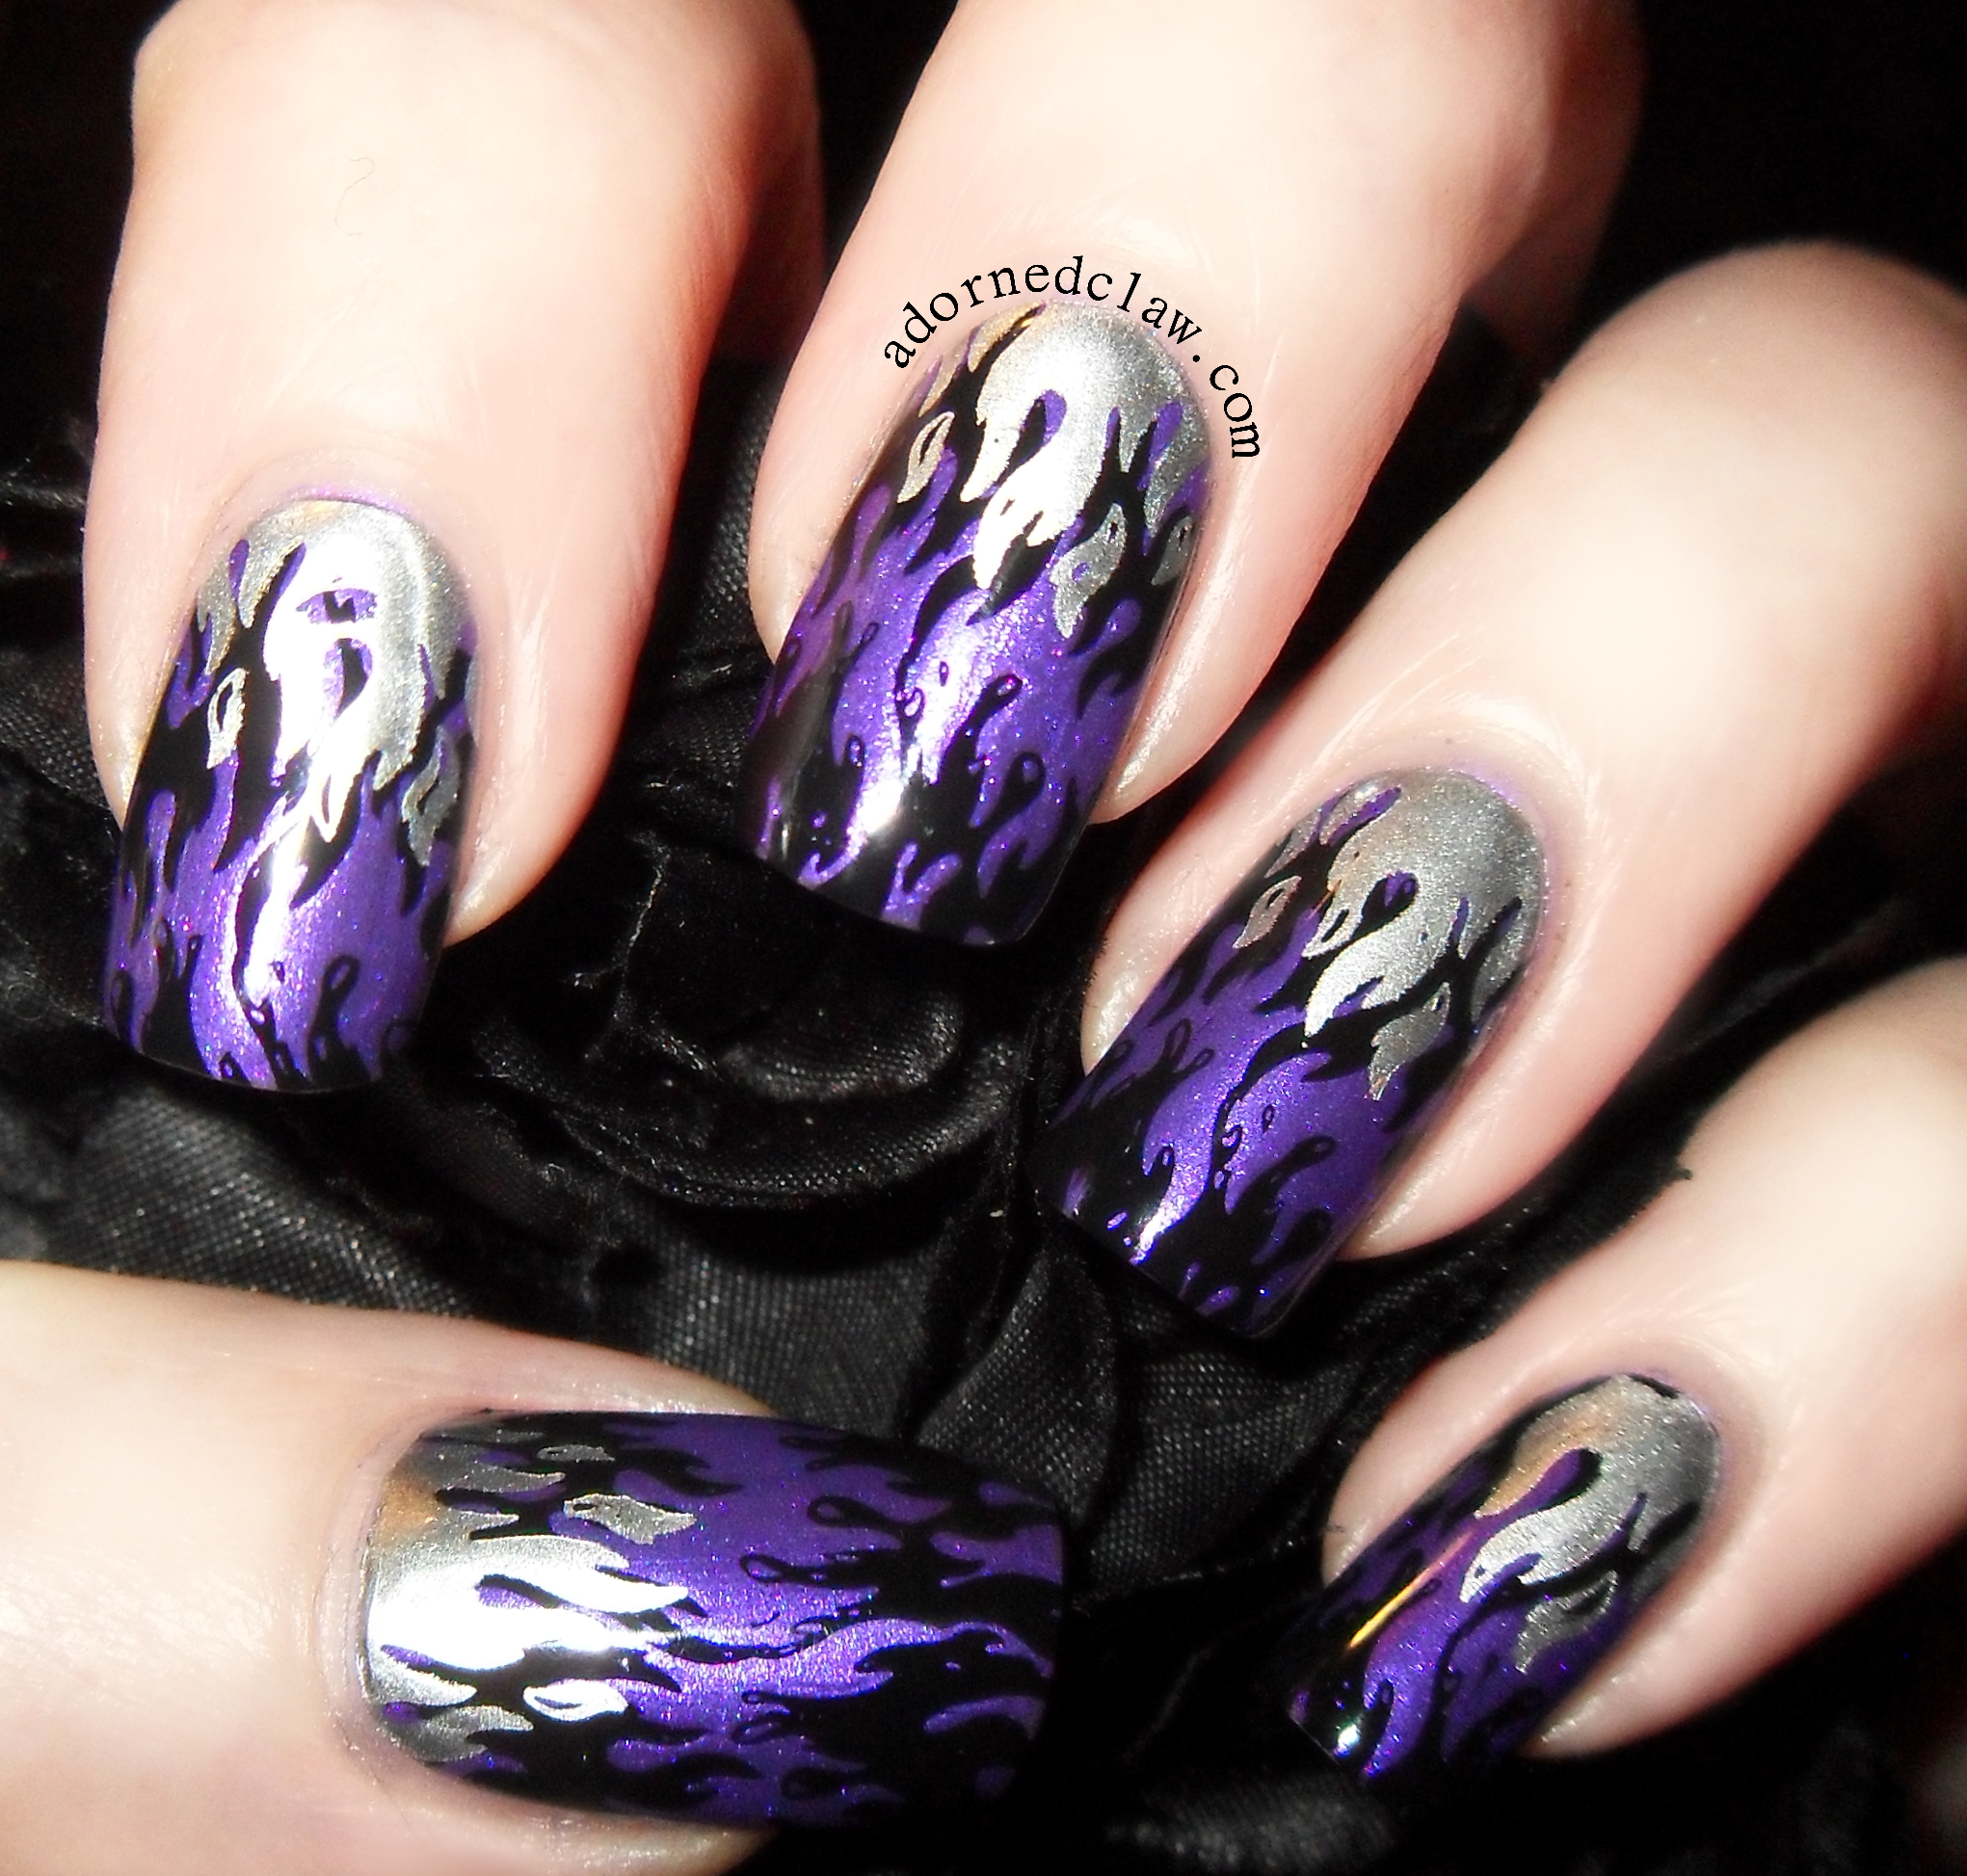 Purple Flames | The Adorned Claw